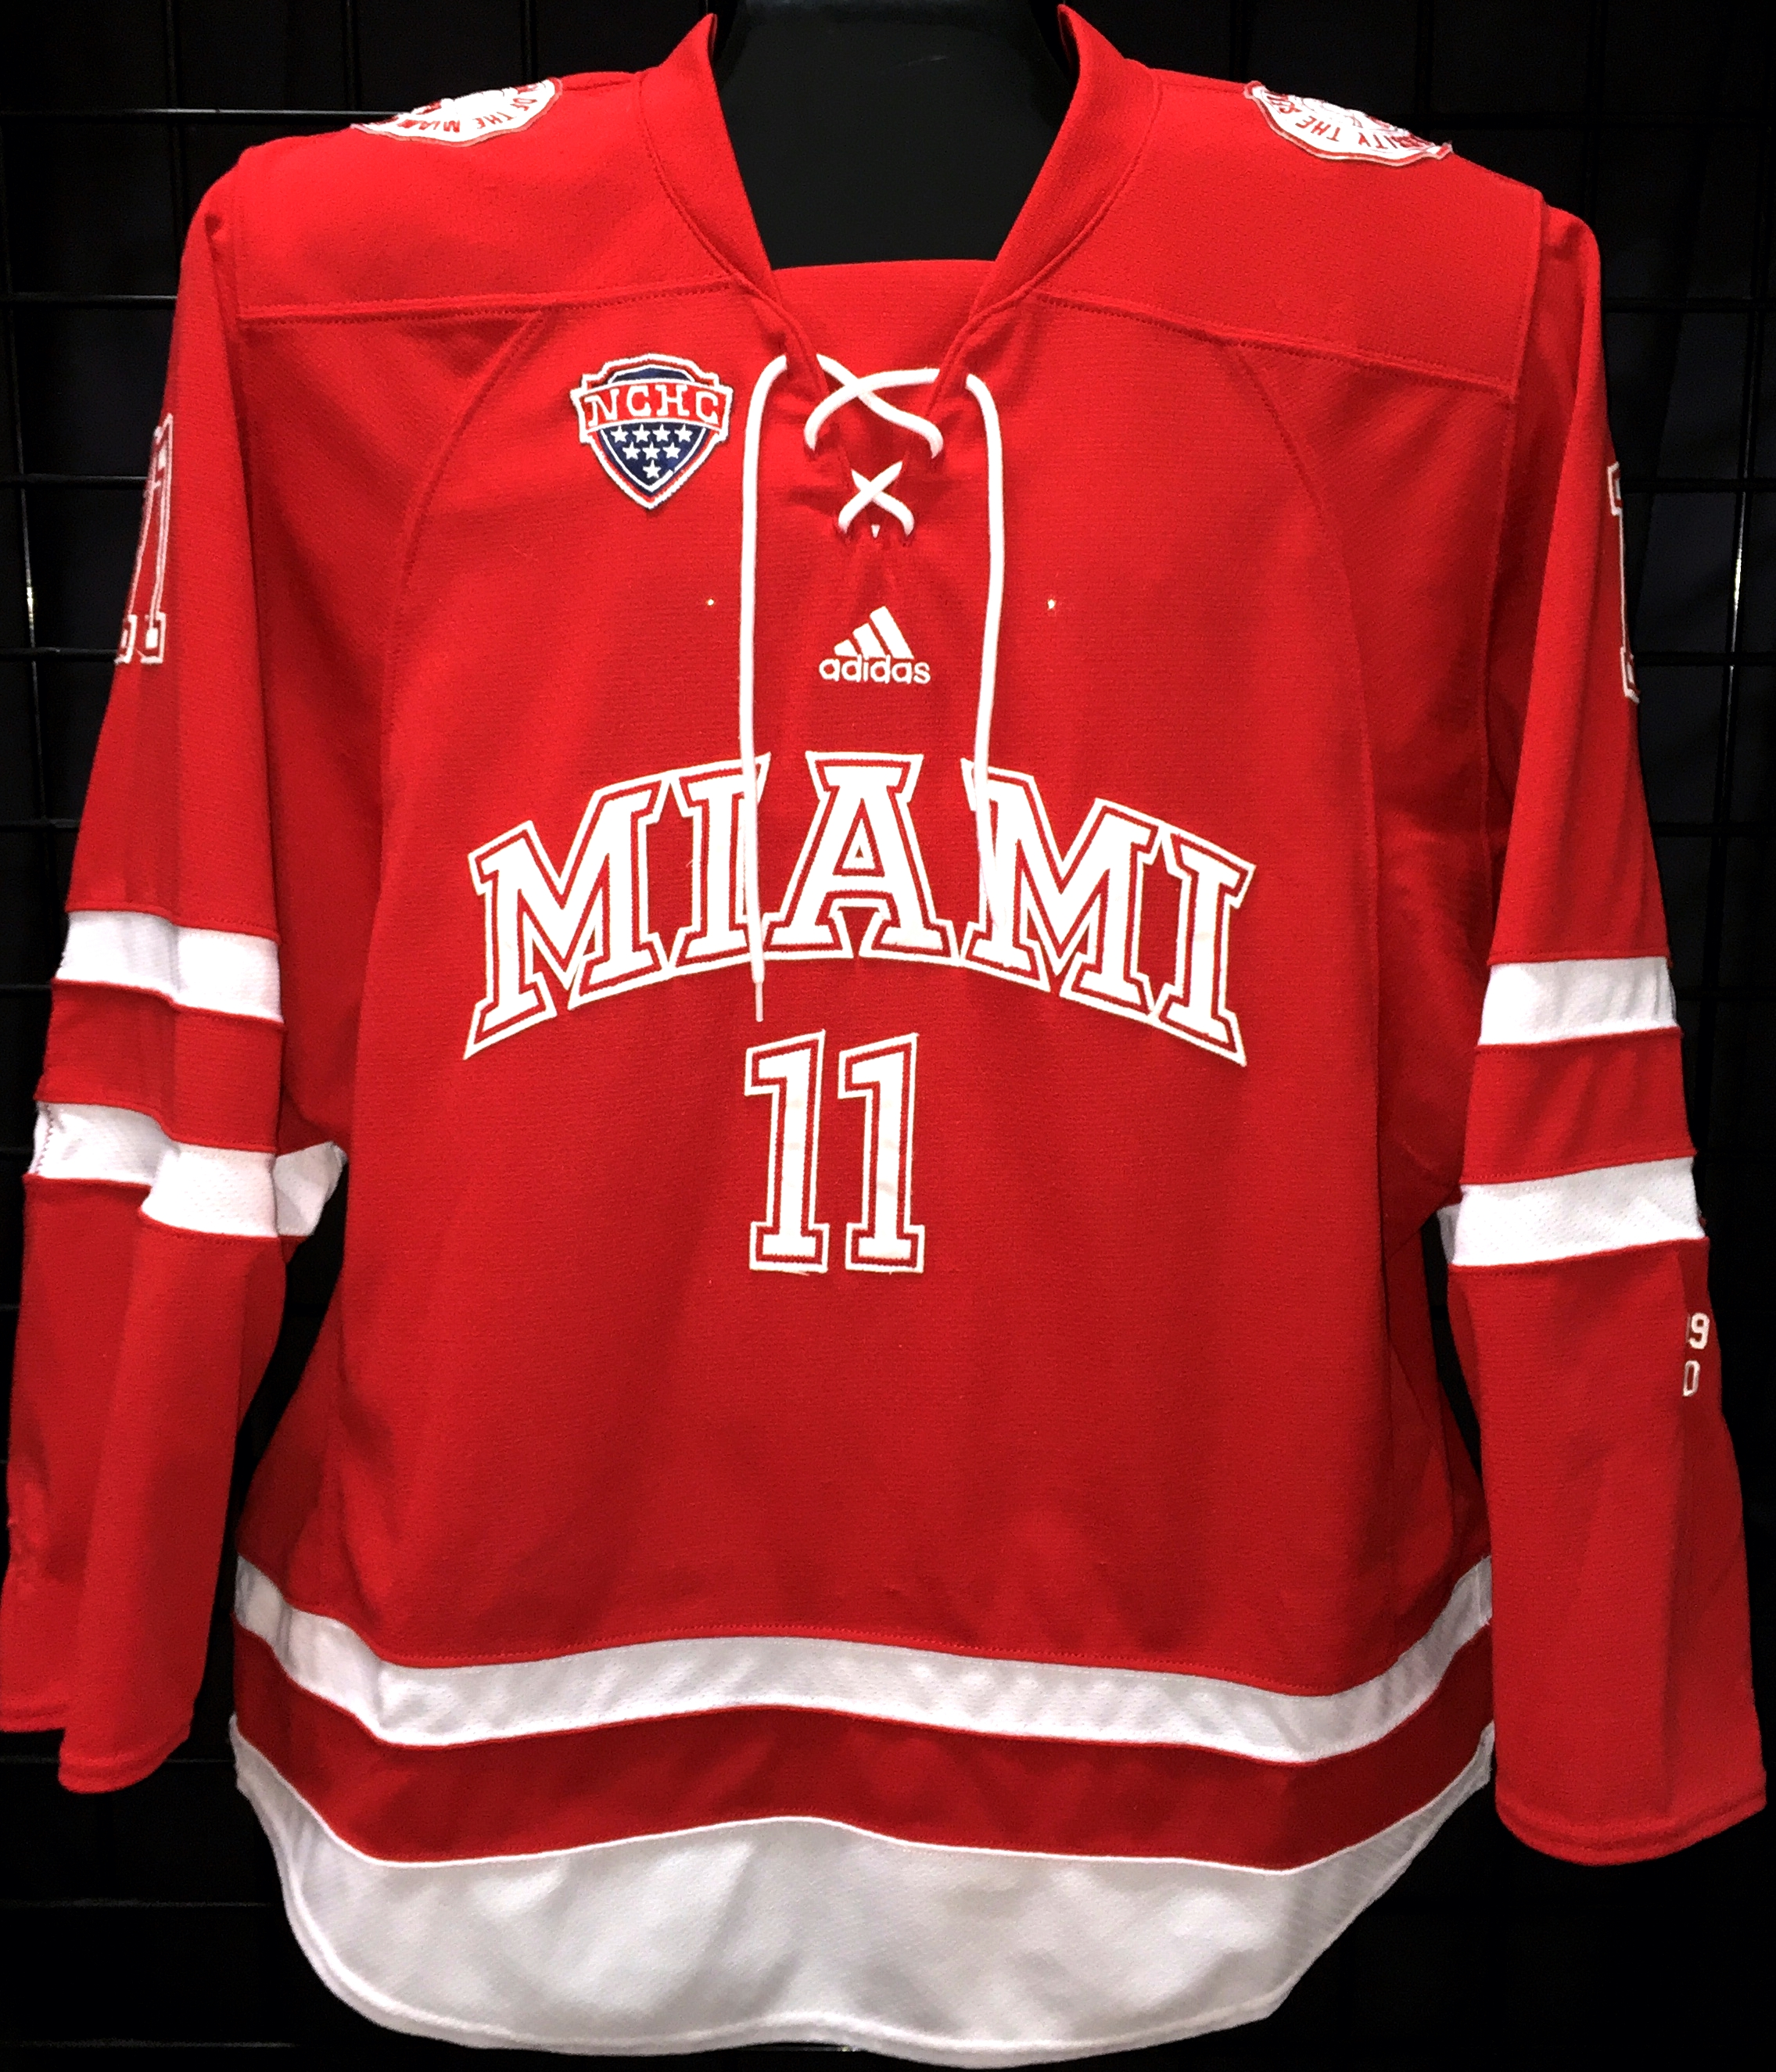 Description  14 15 game worn Miami of Ohio hockey jersey worn by Riley  Barber (Washington Capitals) f3e8d479cb1